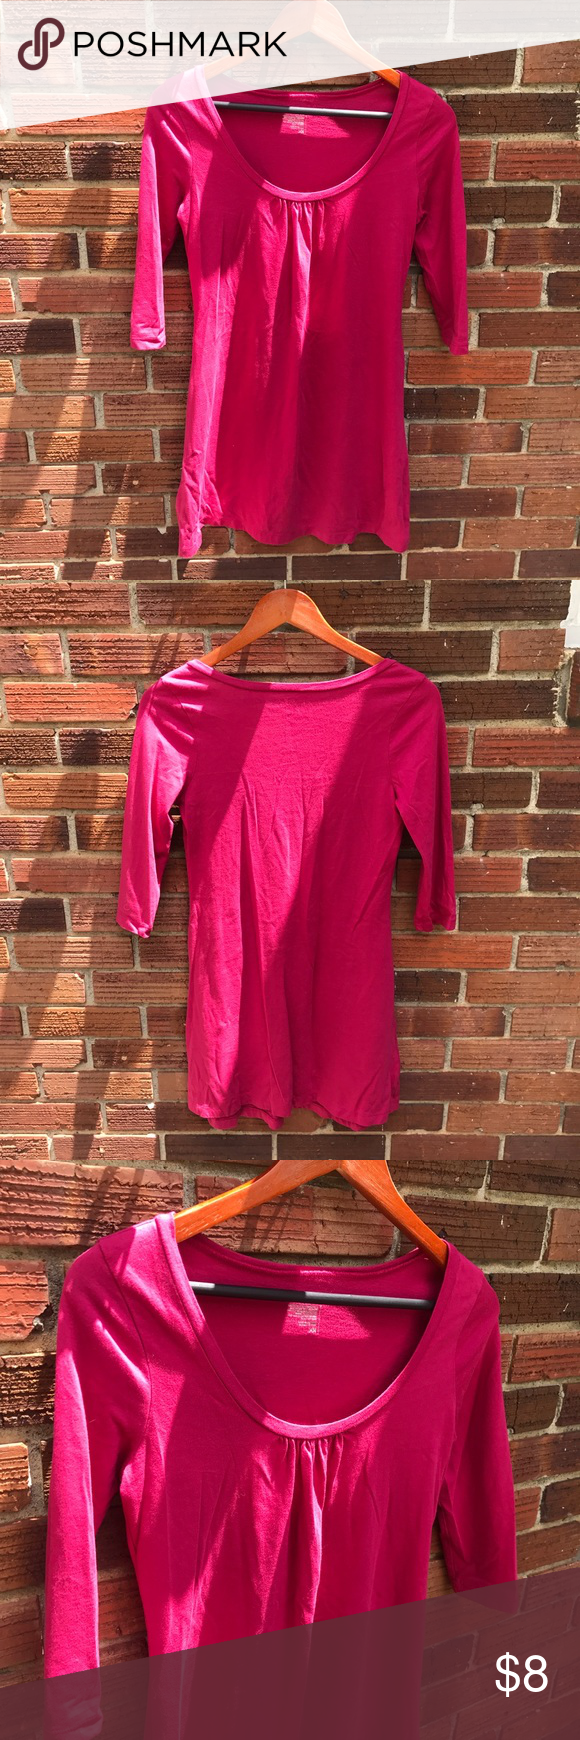 Hot pink color dress  Simple Old Navy Pink  Length Sleeved Dress  Colors Navy pink